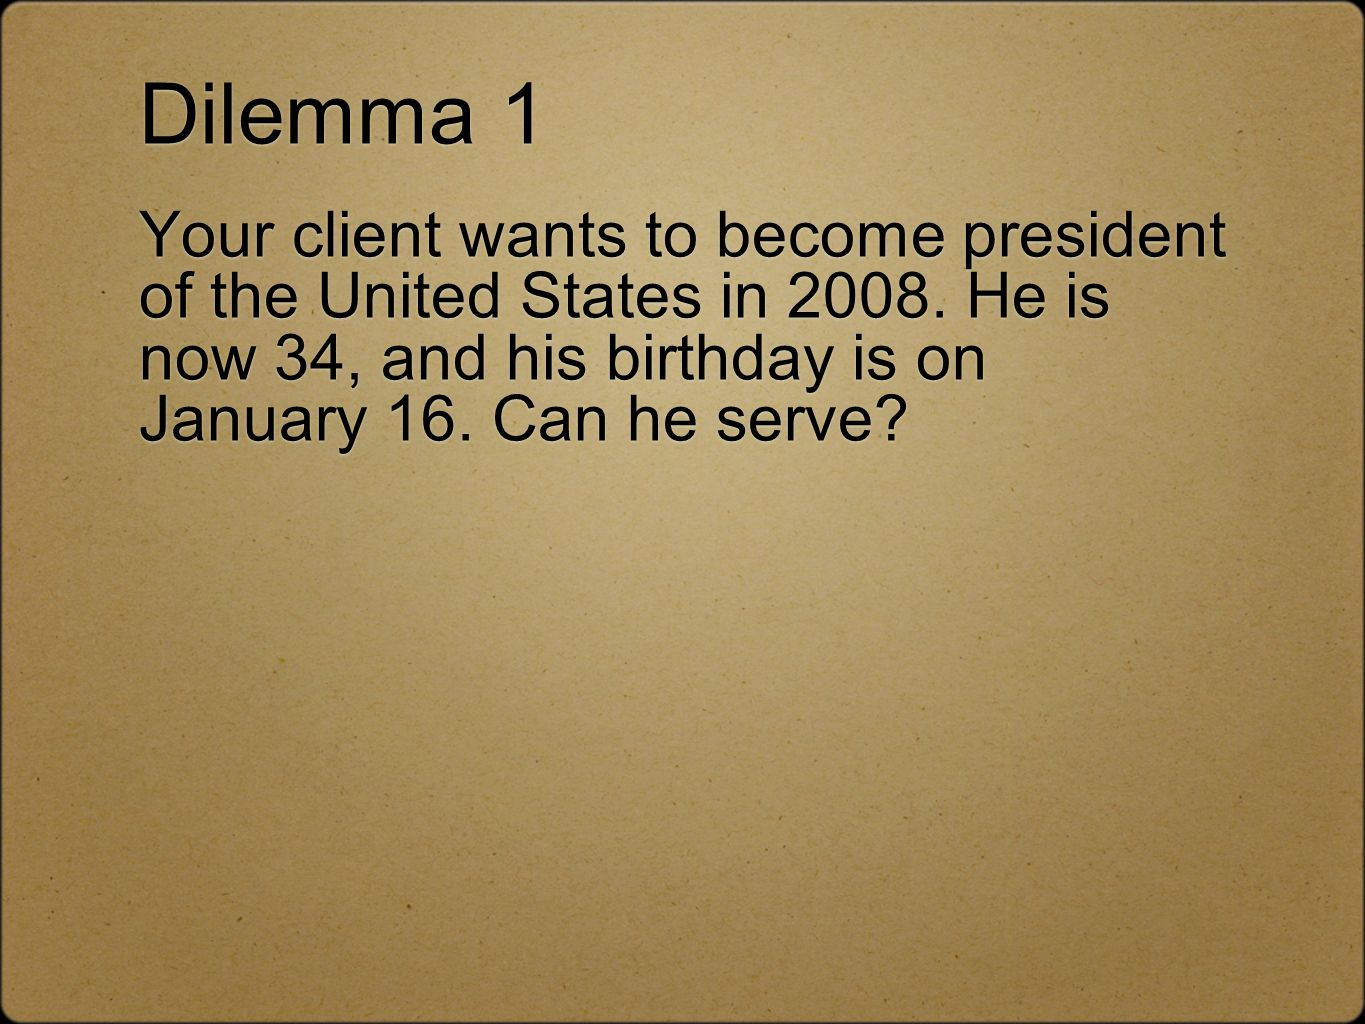 Dilemma 1 Your client wants to become president of the United States in 2008.